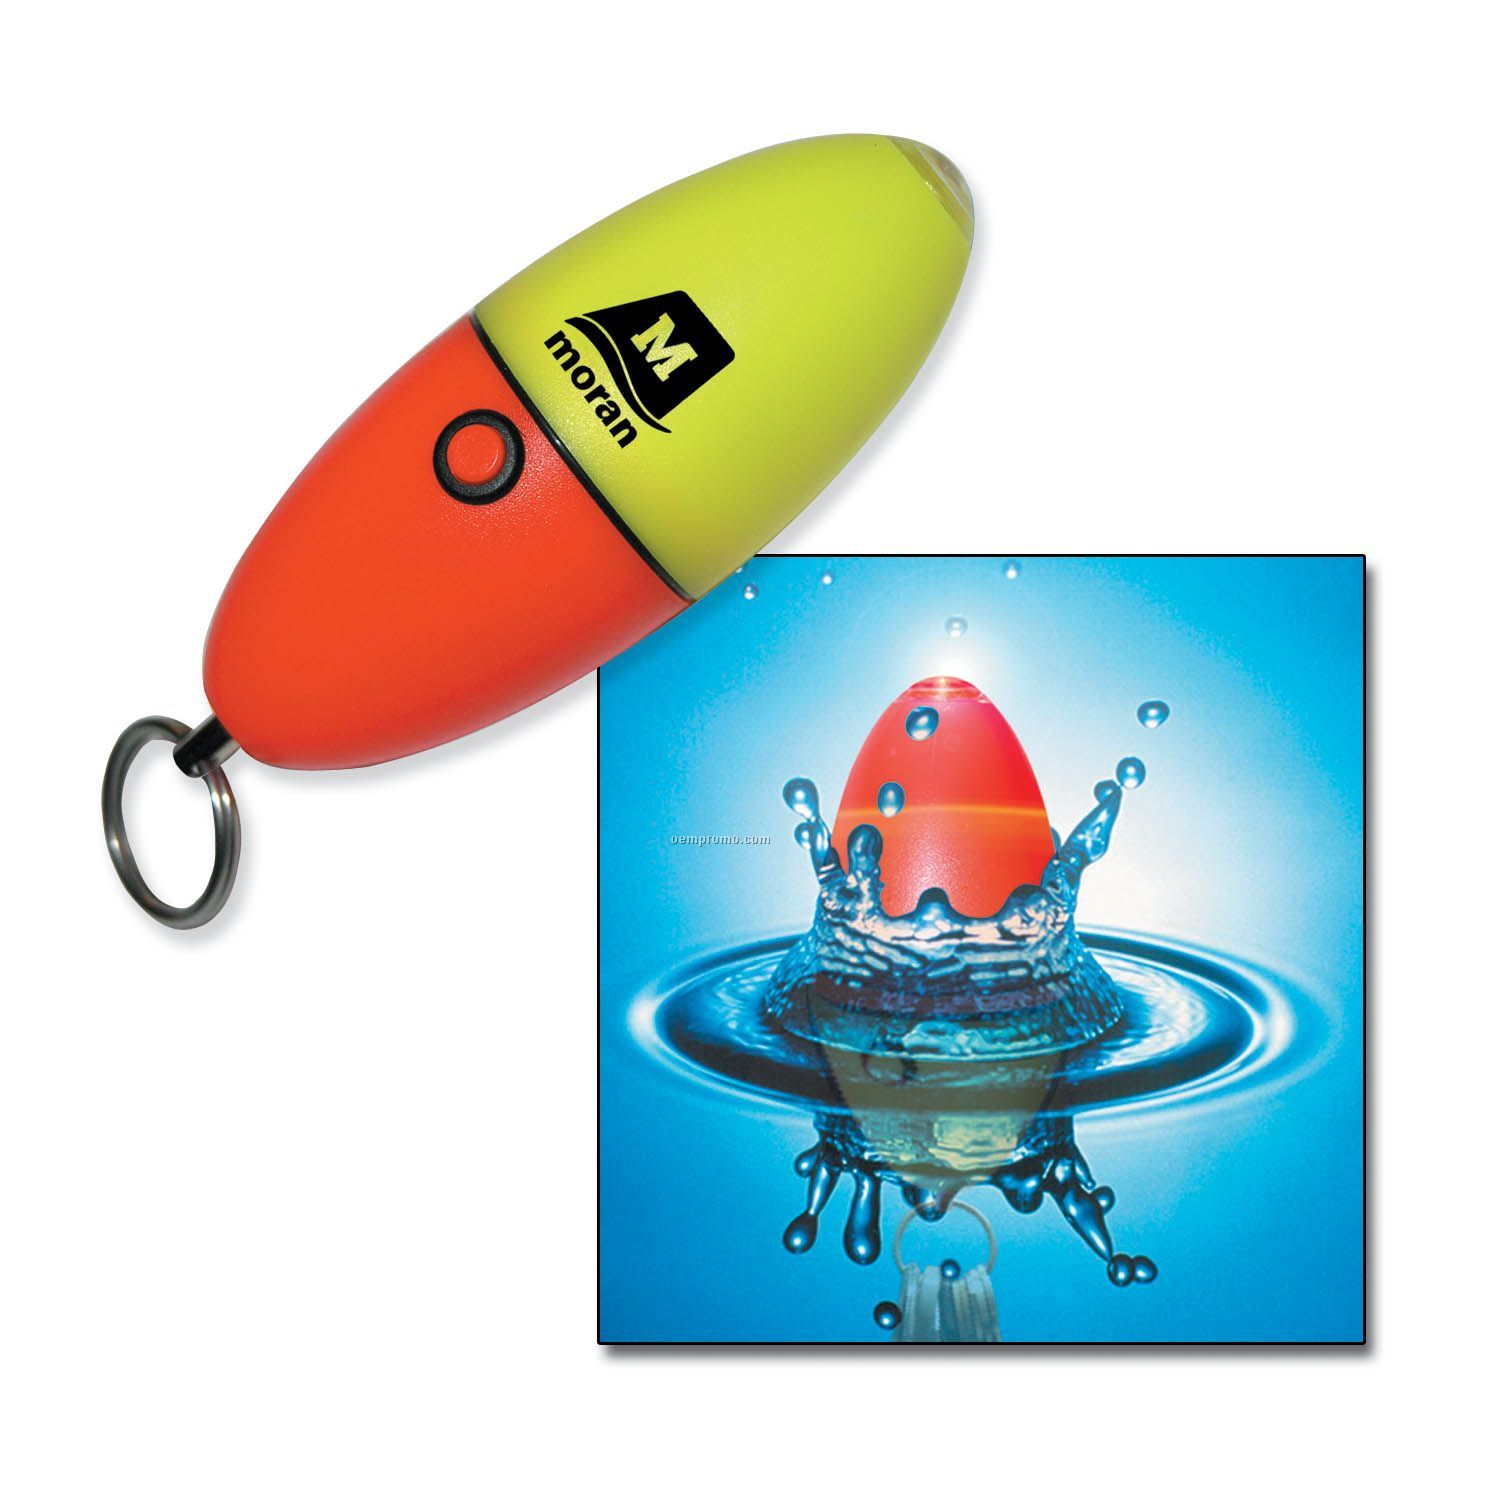 Floating Strobe LED Keychain Lite